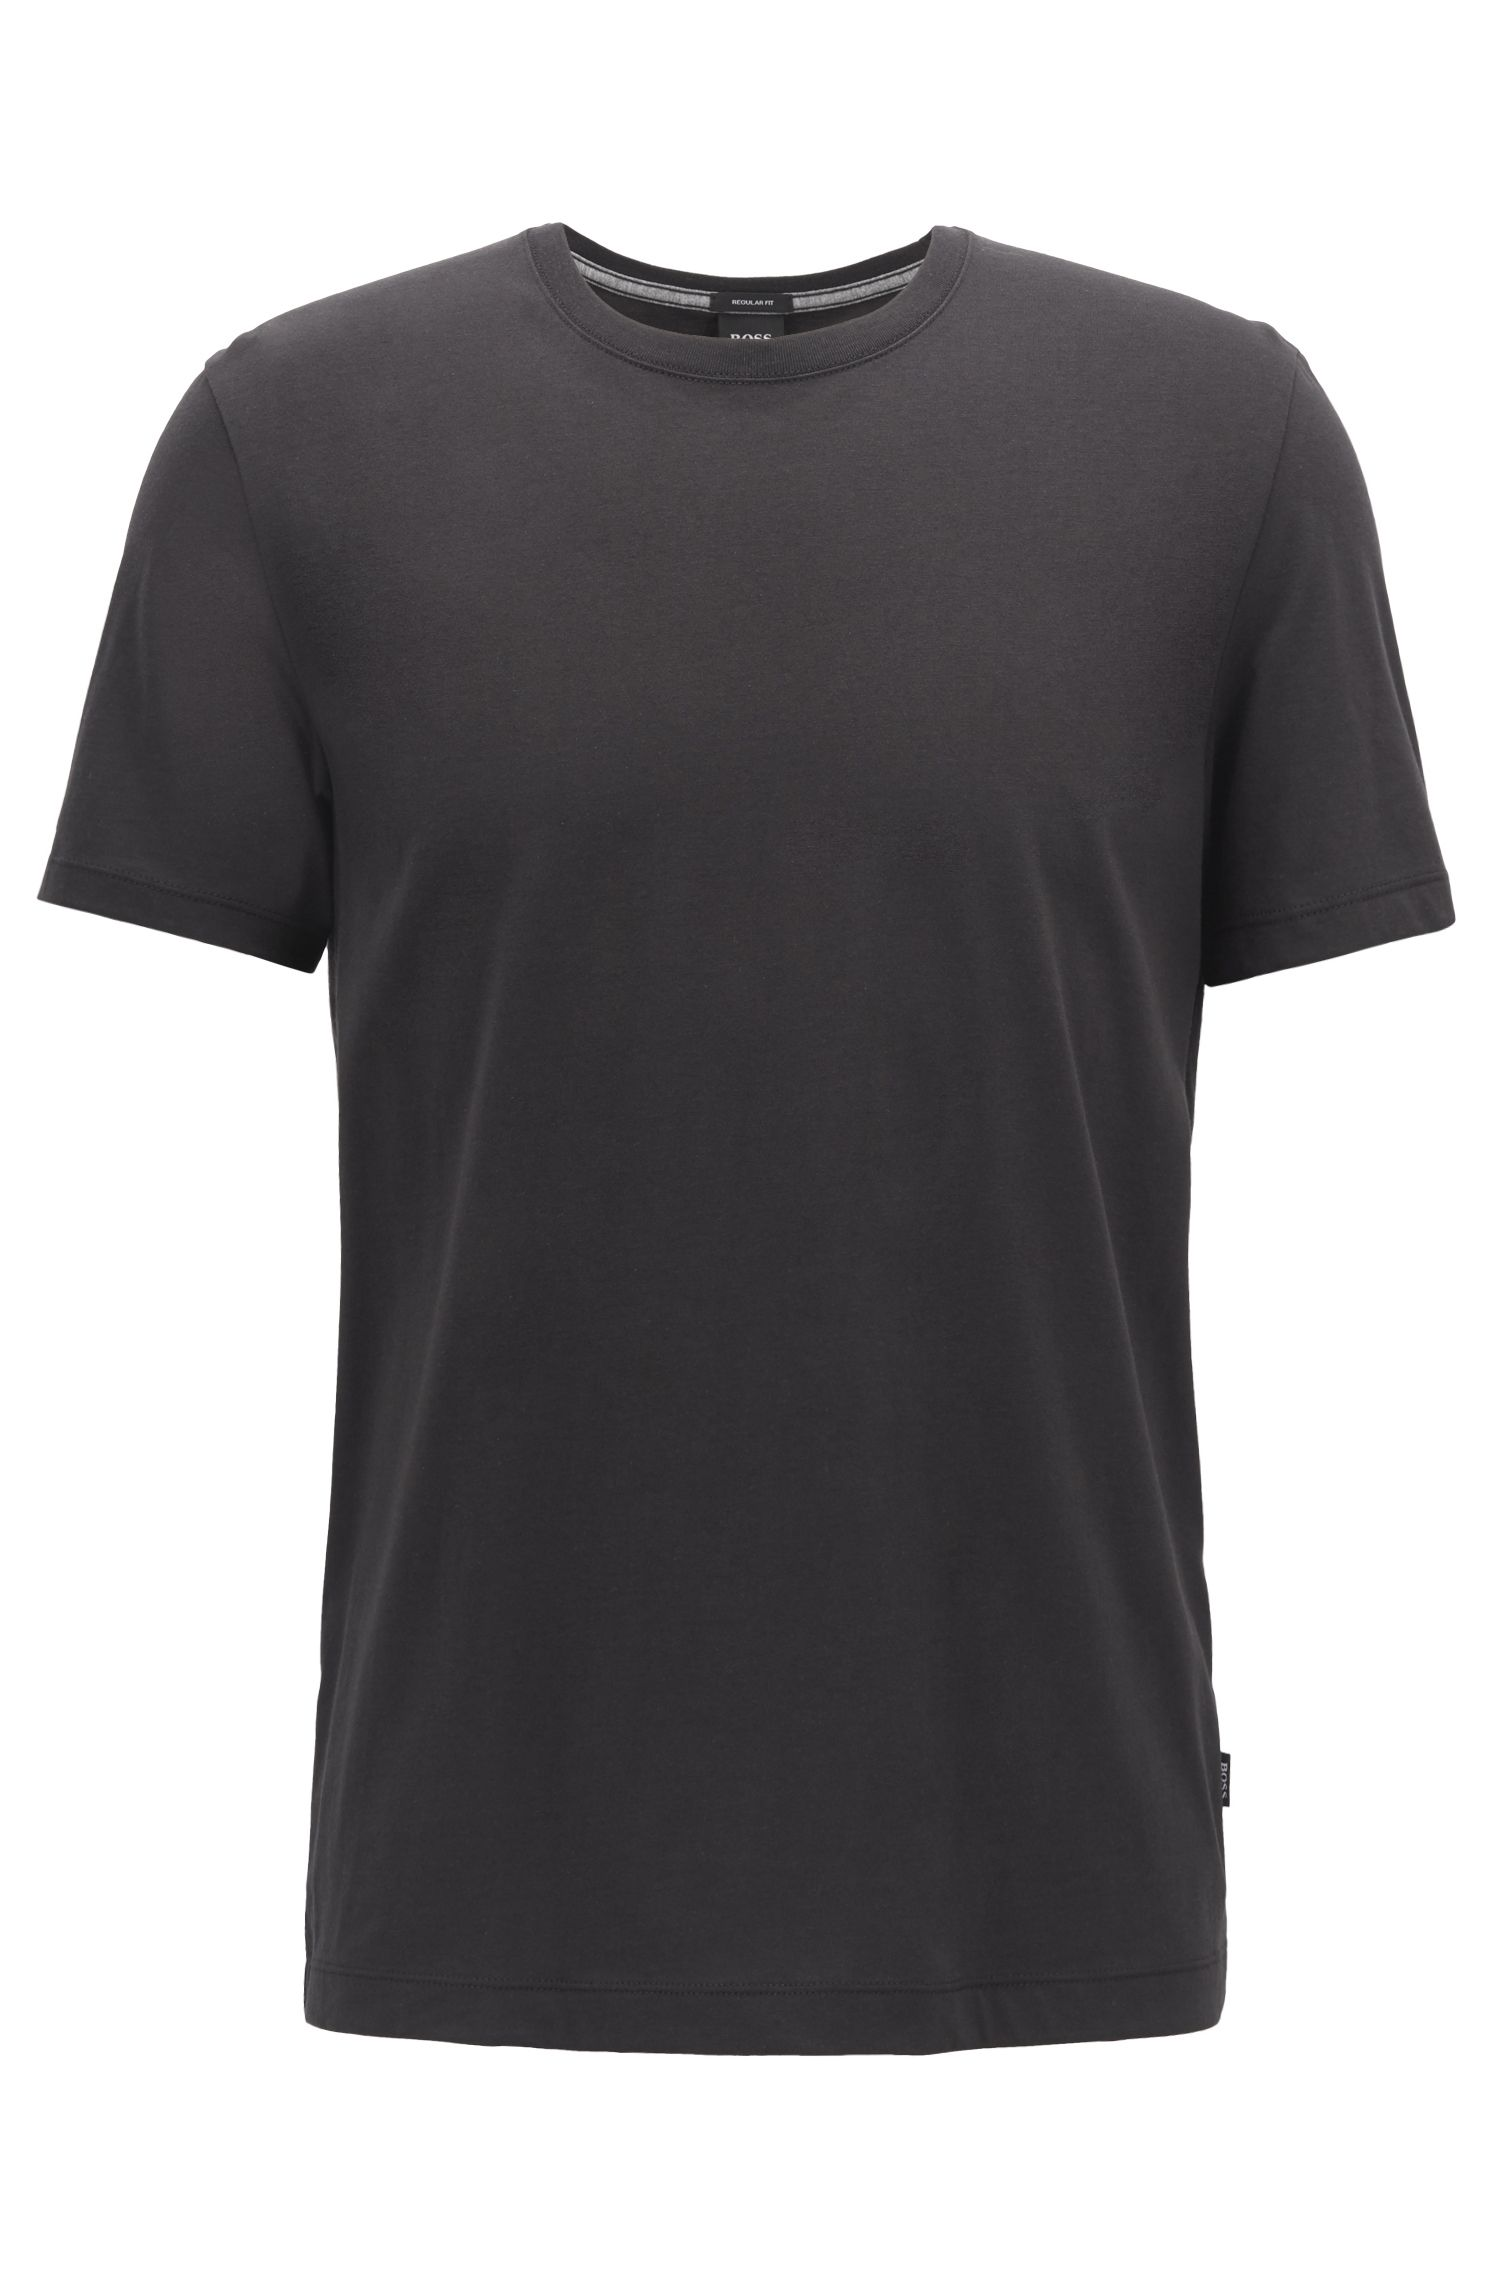 T-shirt Regular Fit en coton doux, Noir